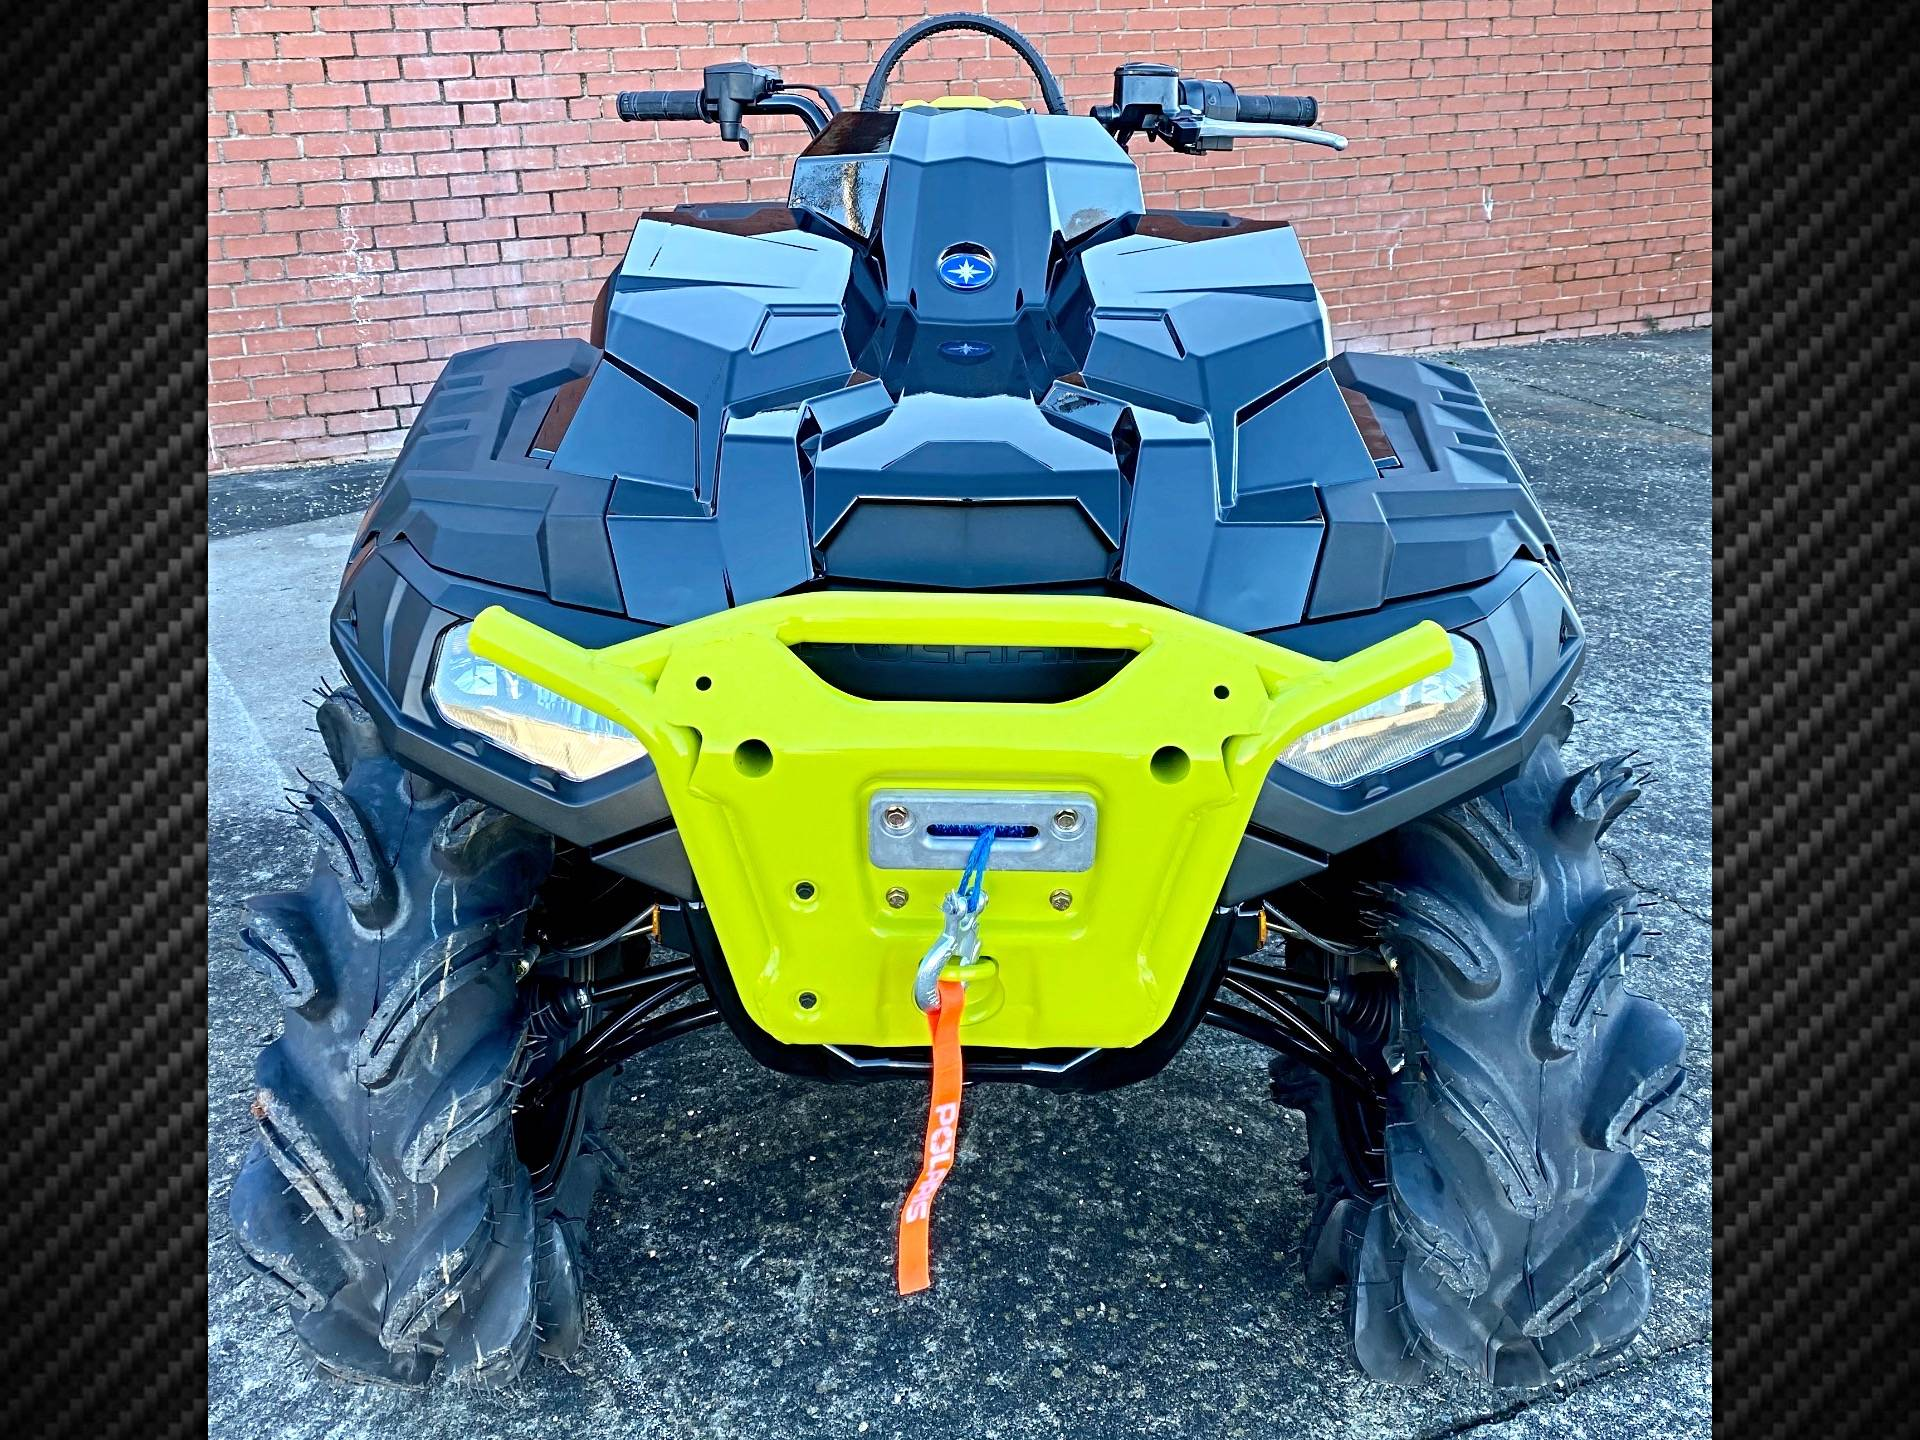 2020 Polaris Sportsman XP 1000 High Lifter Edition in Statesville, North Carolina - Photo 2